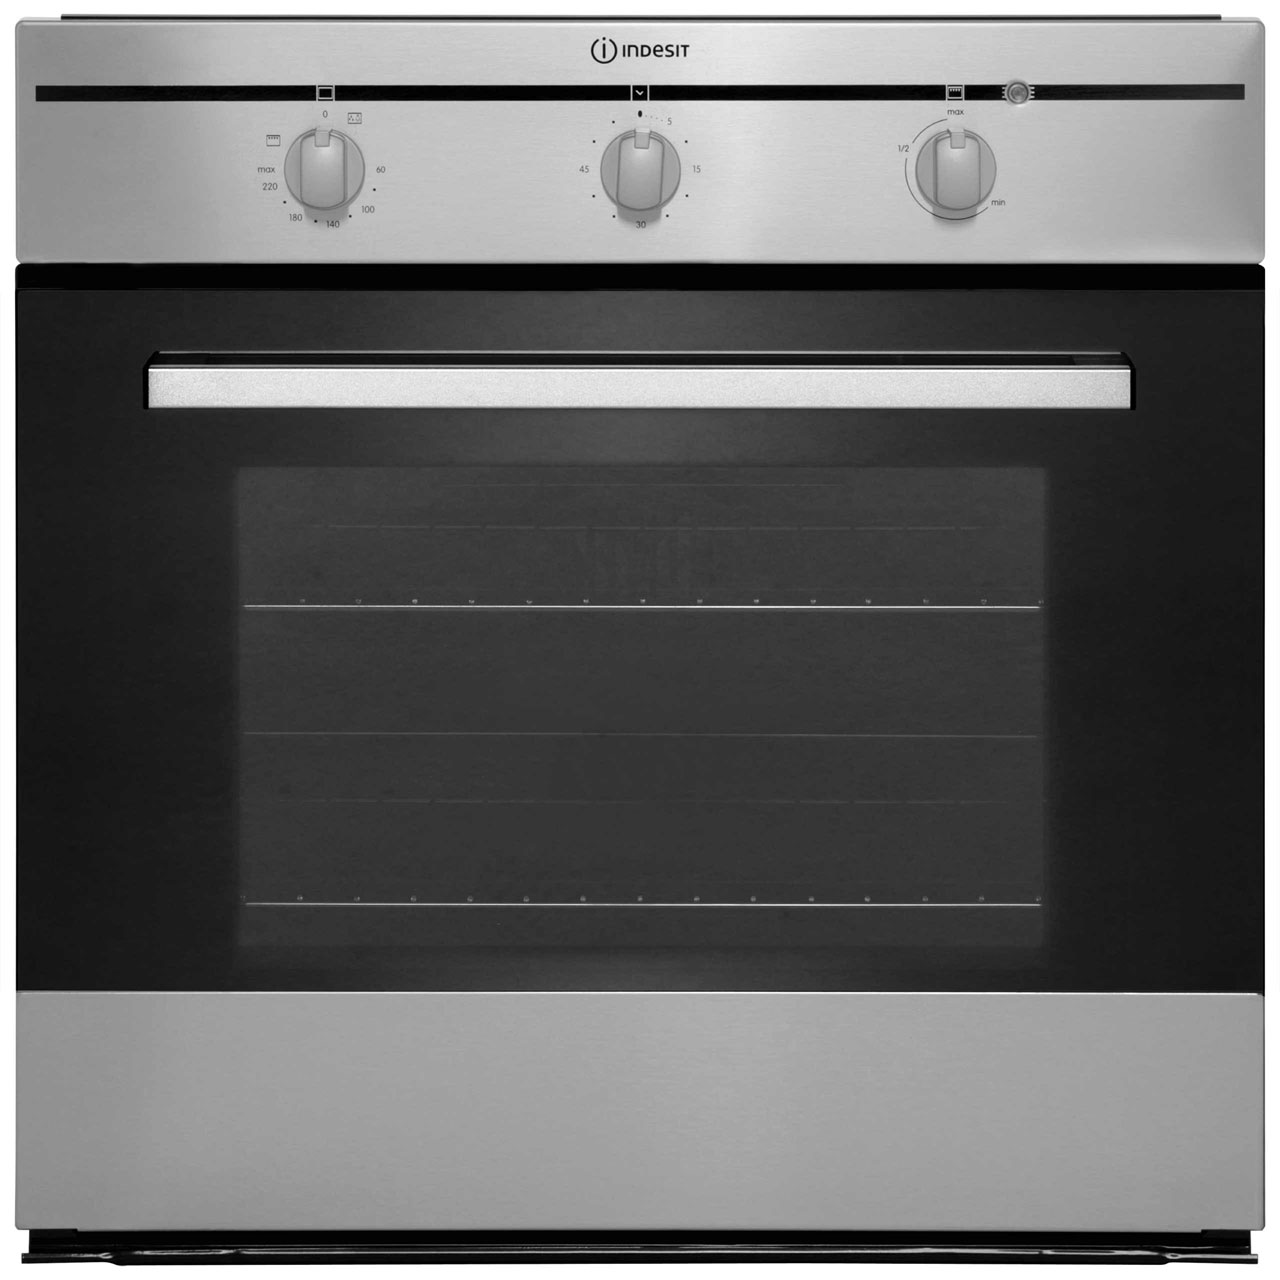 Indesit FIM31KAIX Built In Electric Single Oven - Stainless Steel